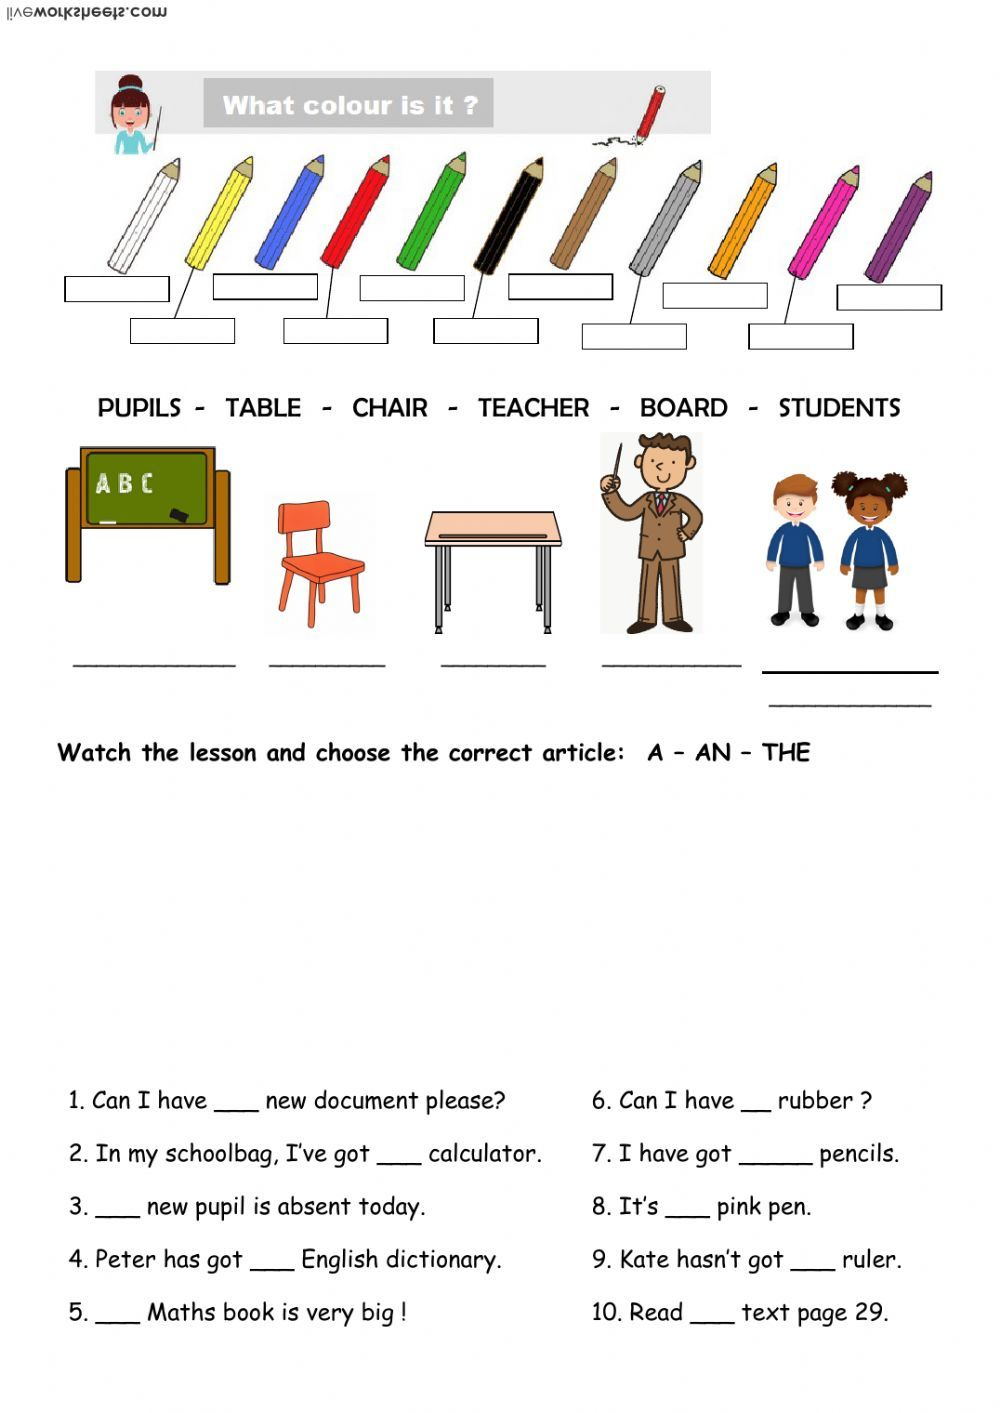 School Objects And Articles Interactive Worksheet Articles Worksheet Worksheets English As A Second Language Esl [ 1413 x 1000 Pixel ]